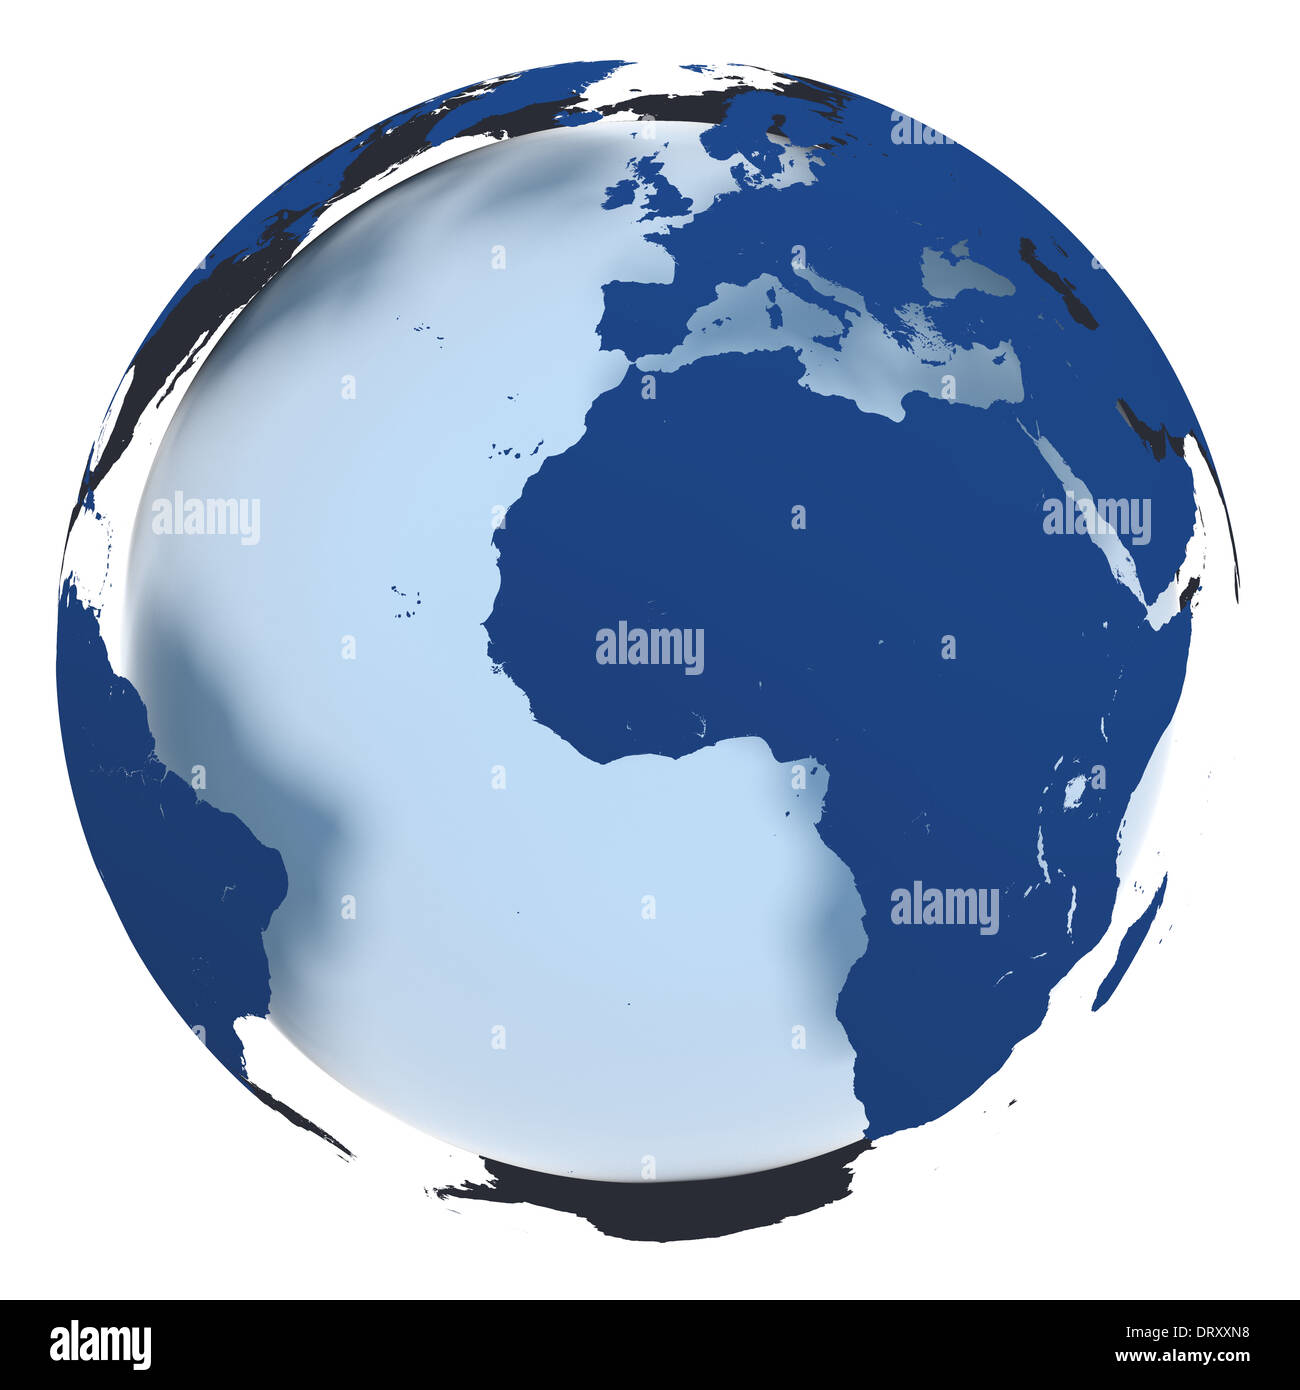 Coloring pictures continents - 3d Model Of Earth In Elegant Blue Coloring With Continents Hovering Over The Sphere Elements